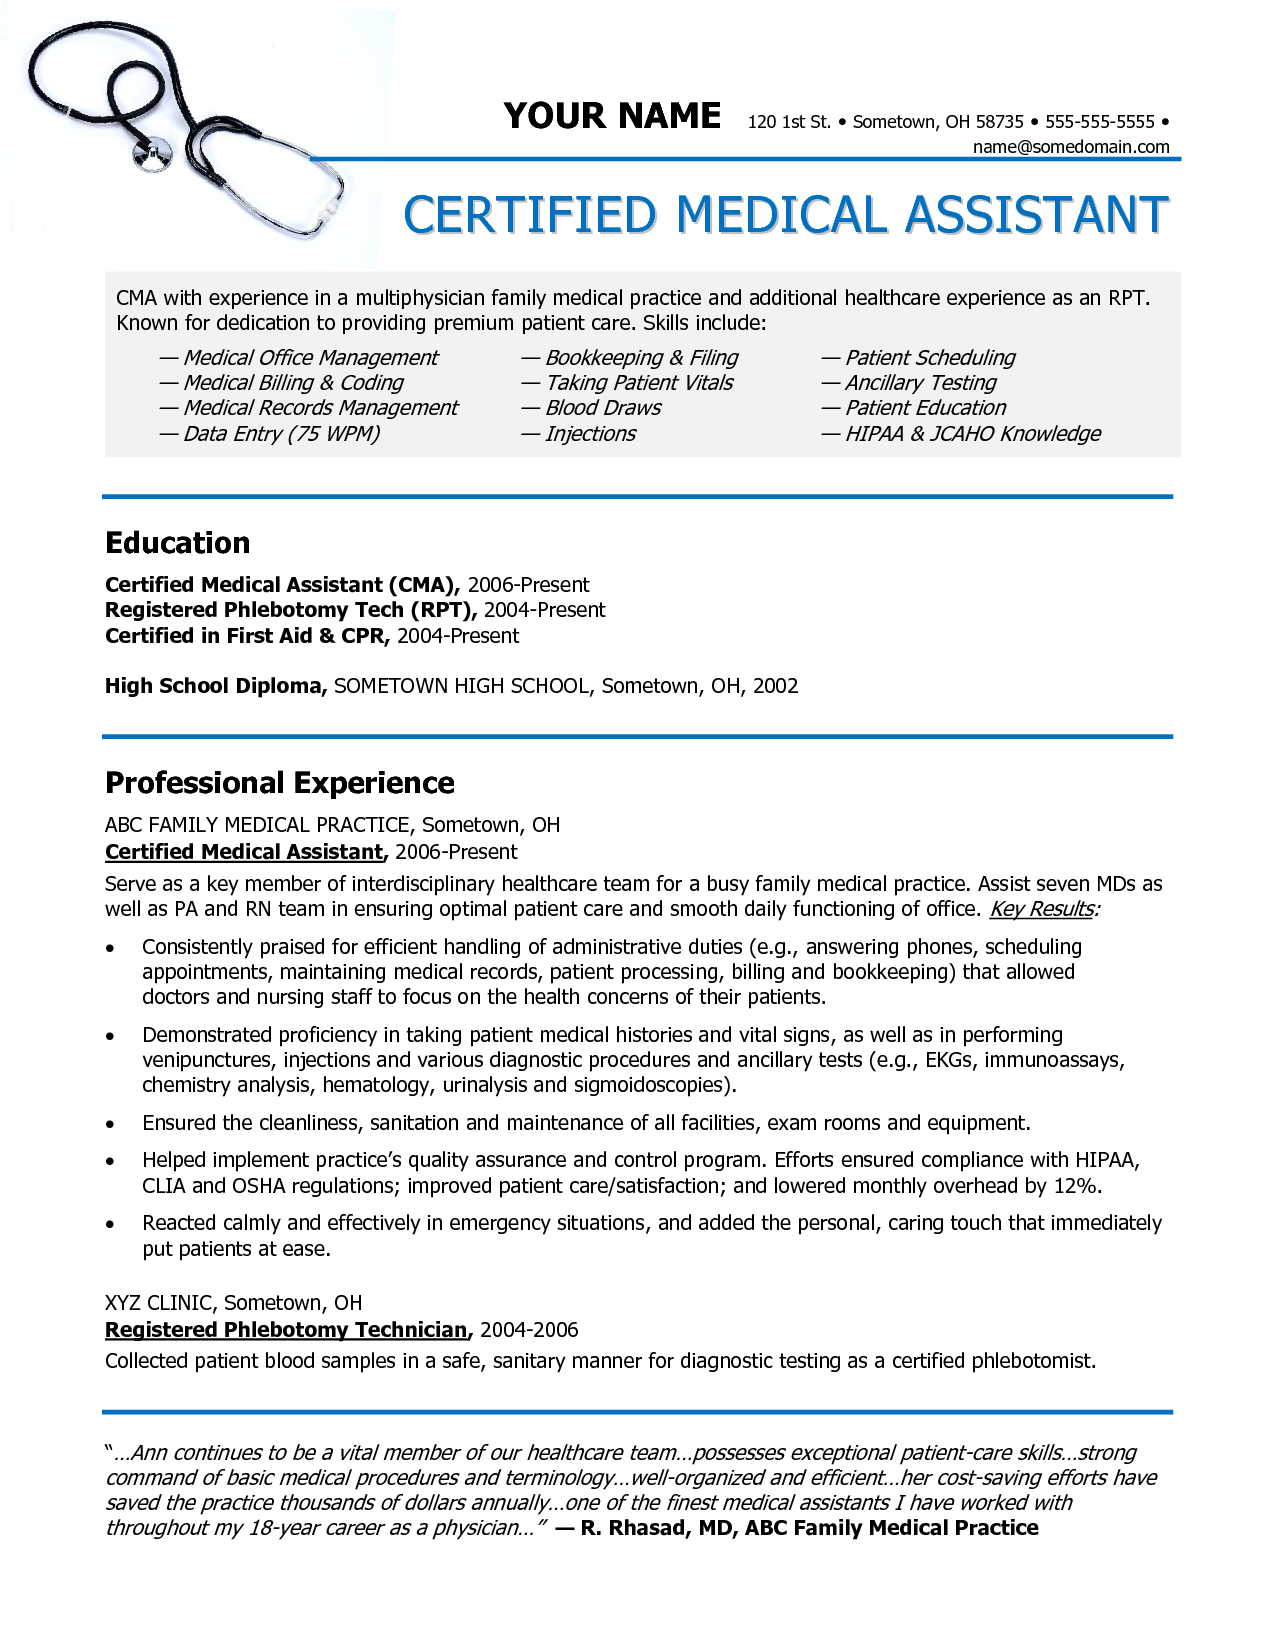 Medical Assistant Resumes Samples Medical Assistant Resume Samples Medical Assistant Job Description .